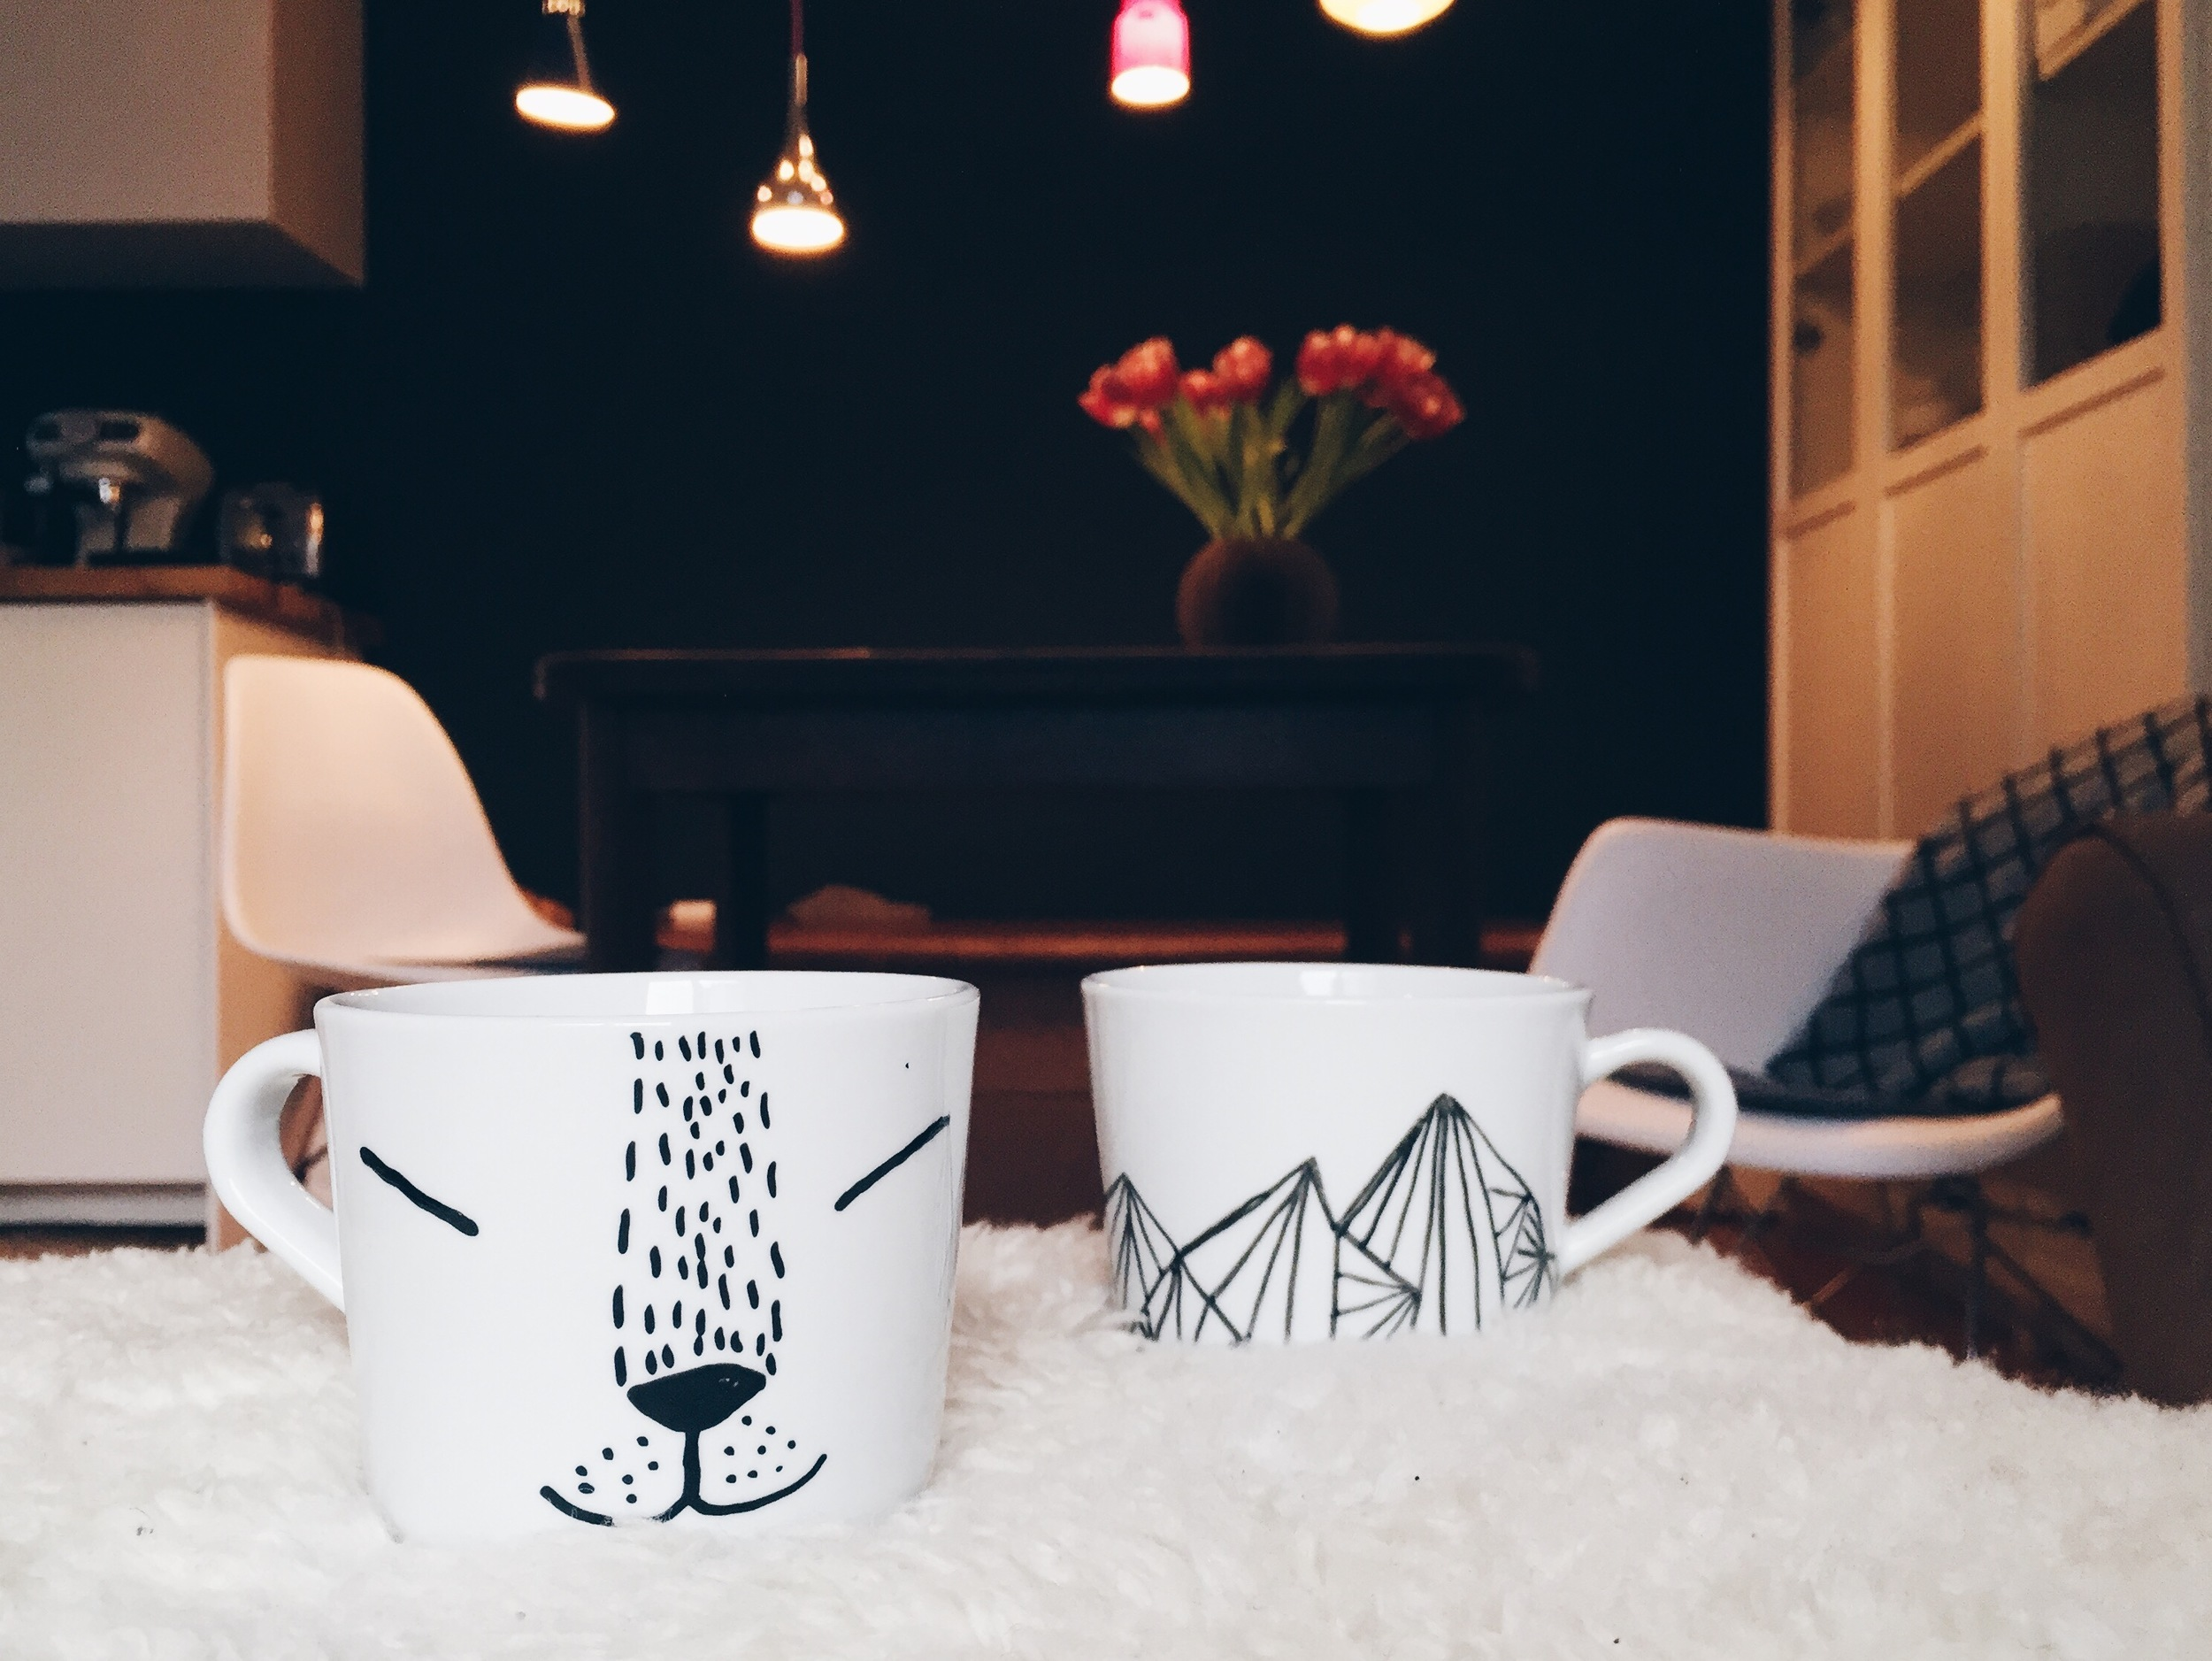 ikea hack: painted mugs